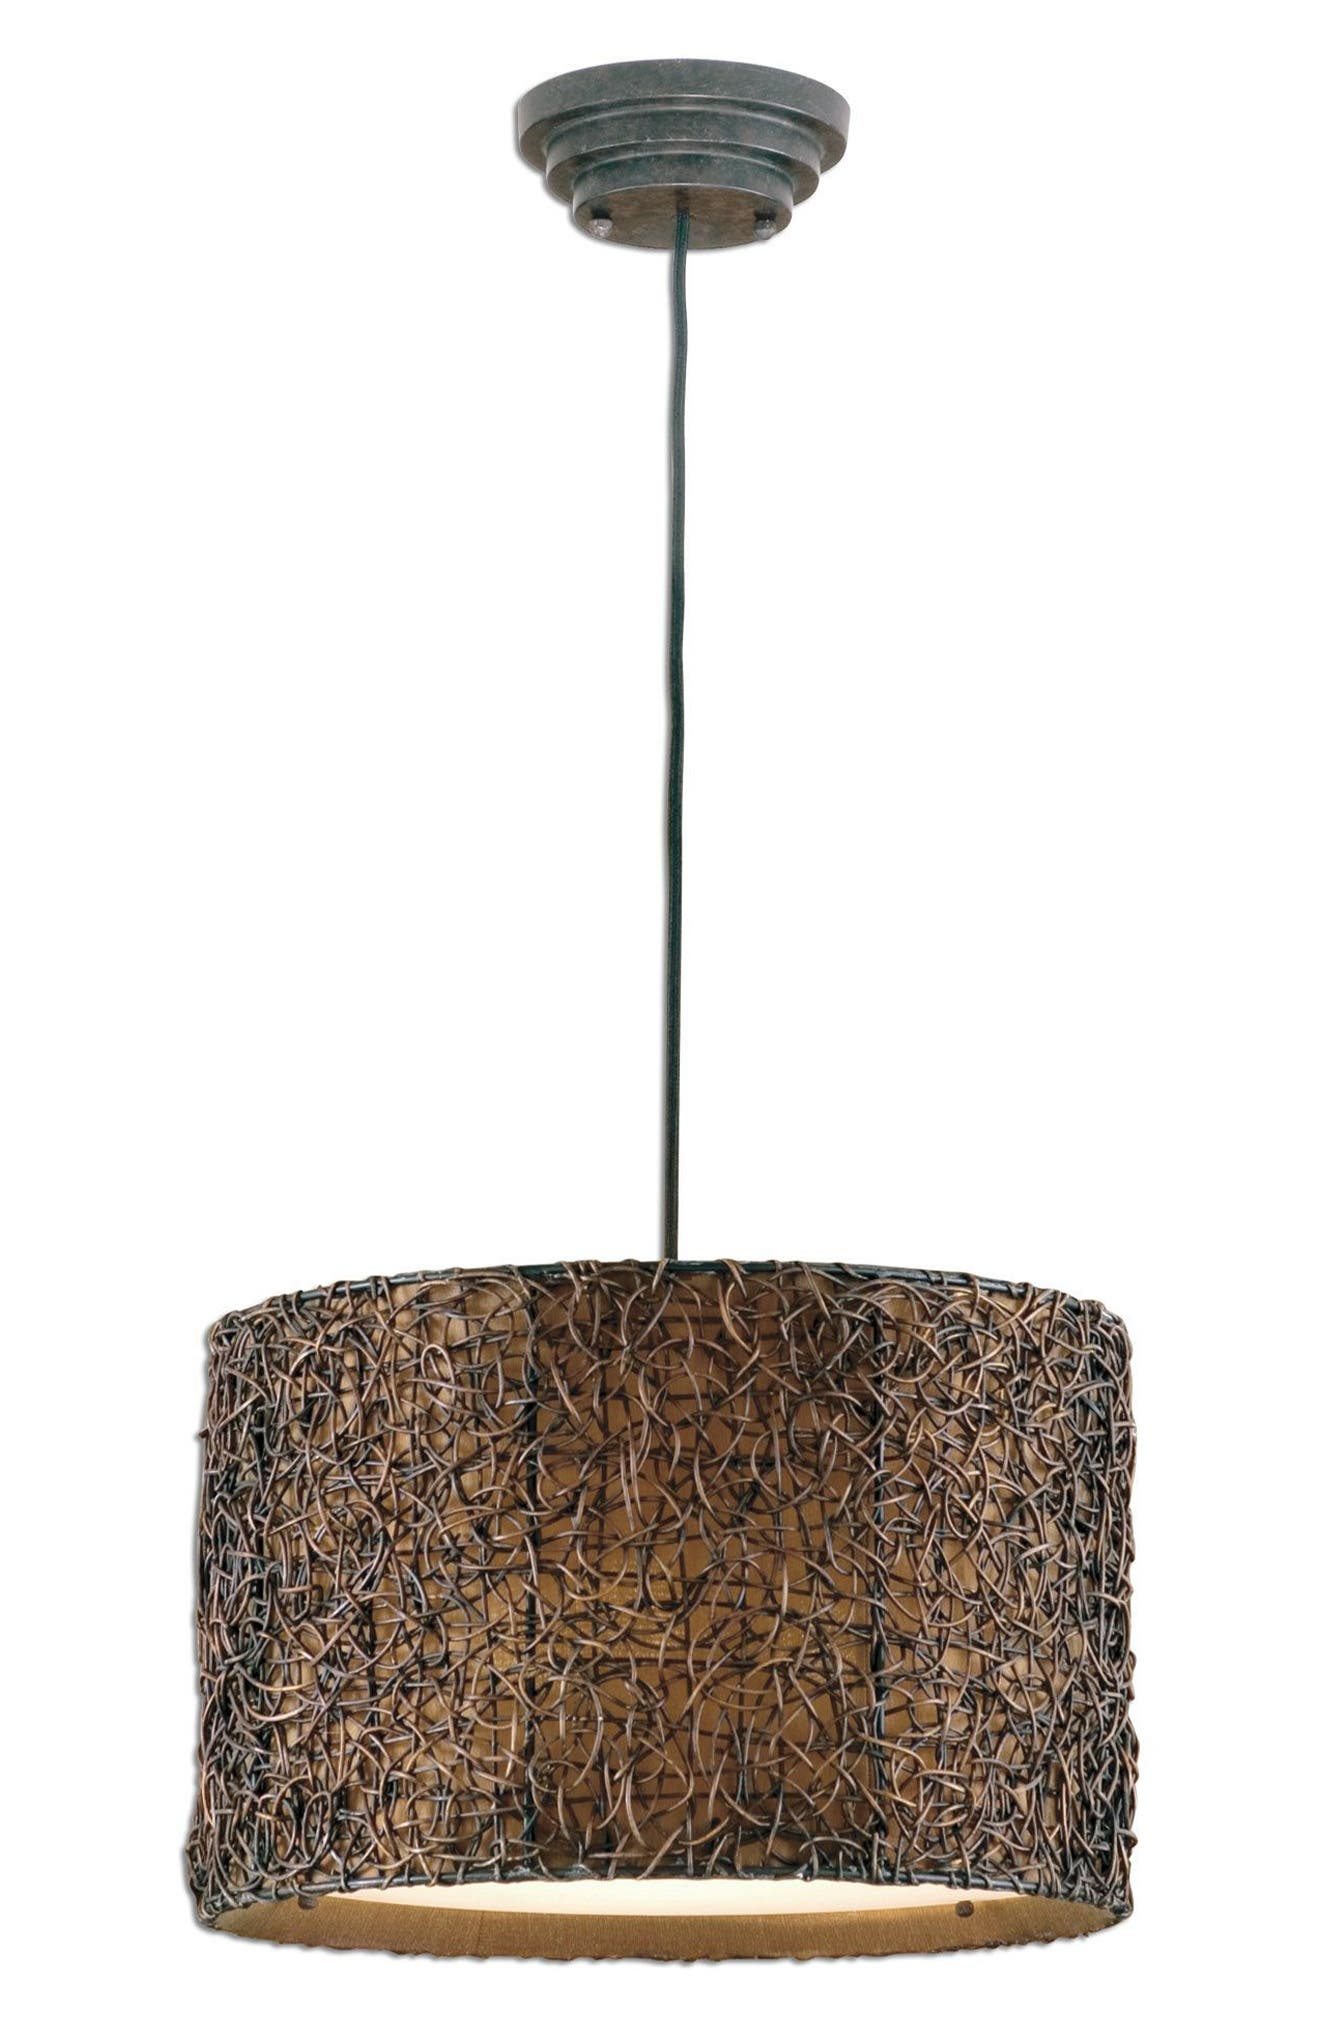 Knotted Rattan Pendant Lamp,                         Main,                         color, 220